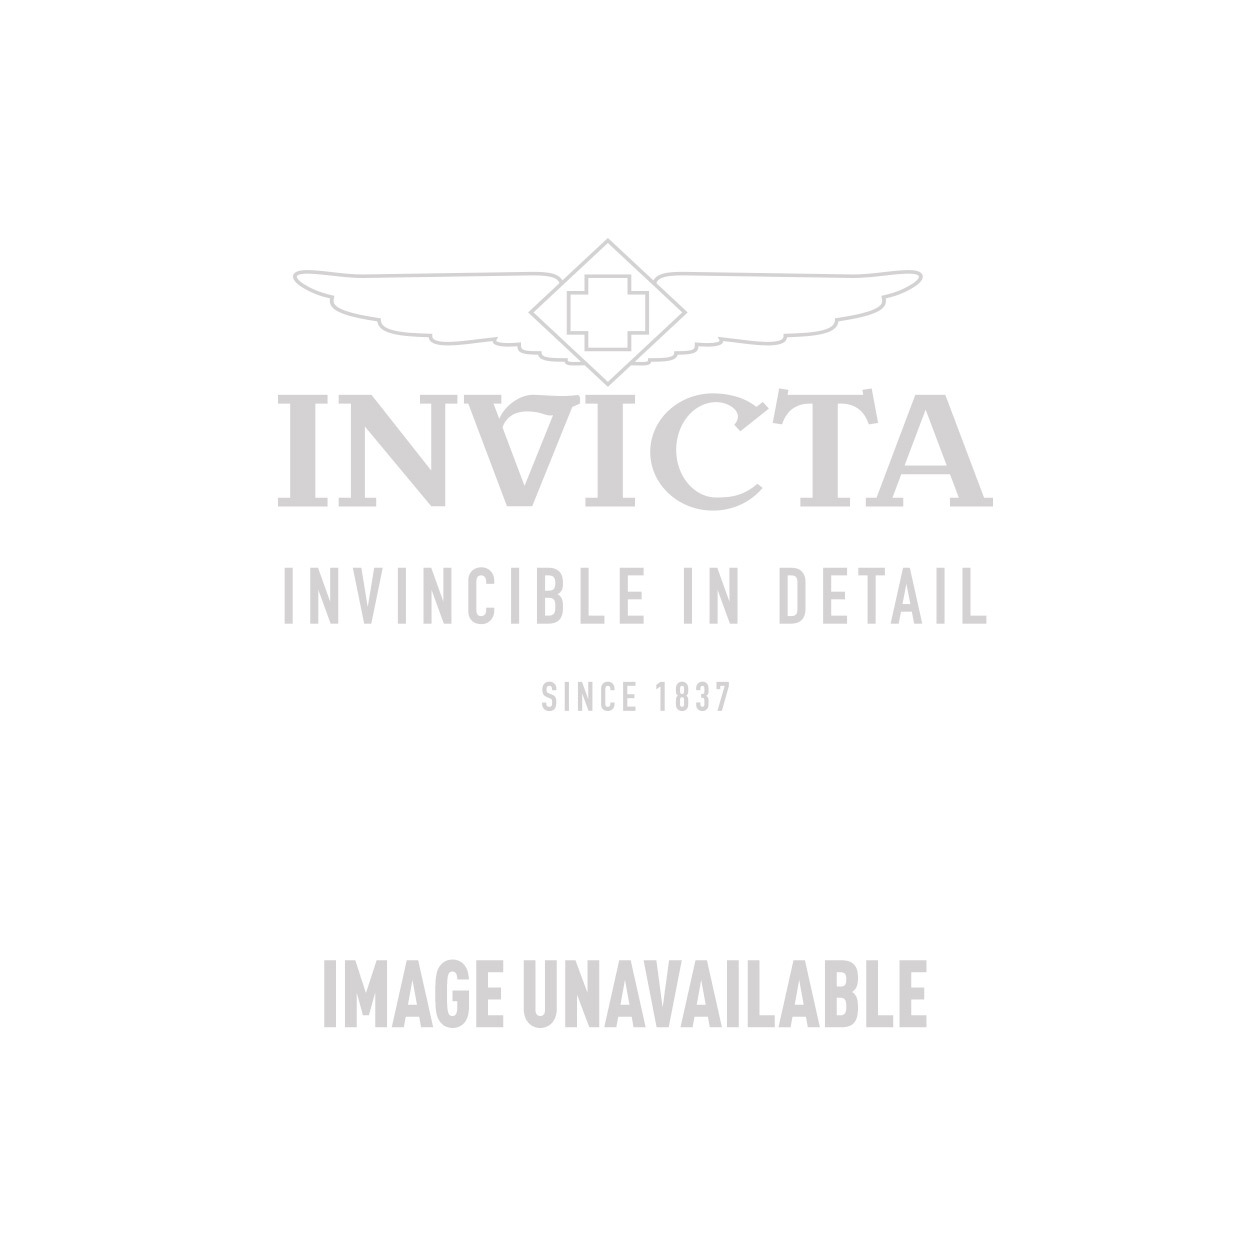 Invicta Bolt Swiss Made Quartz Watch - Gold, Stainless Steel case with Steel, Gold tone Stainless Steel band - Model 15273